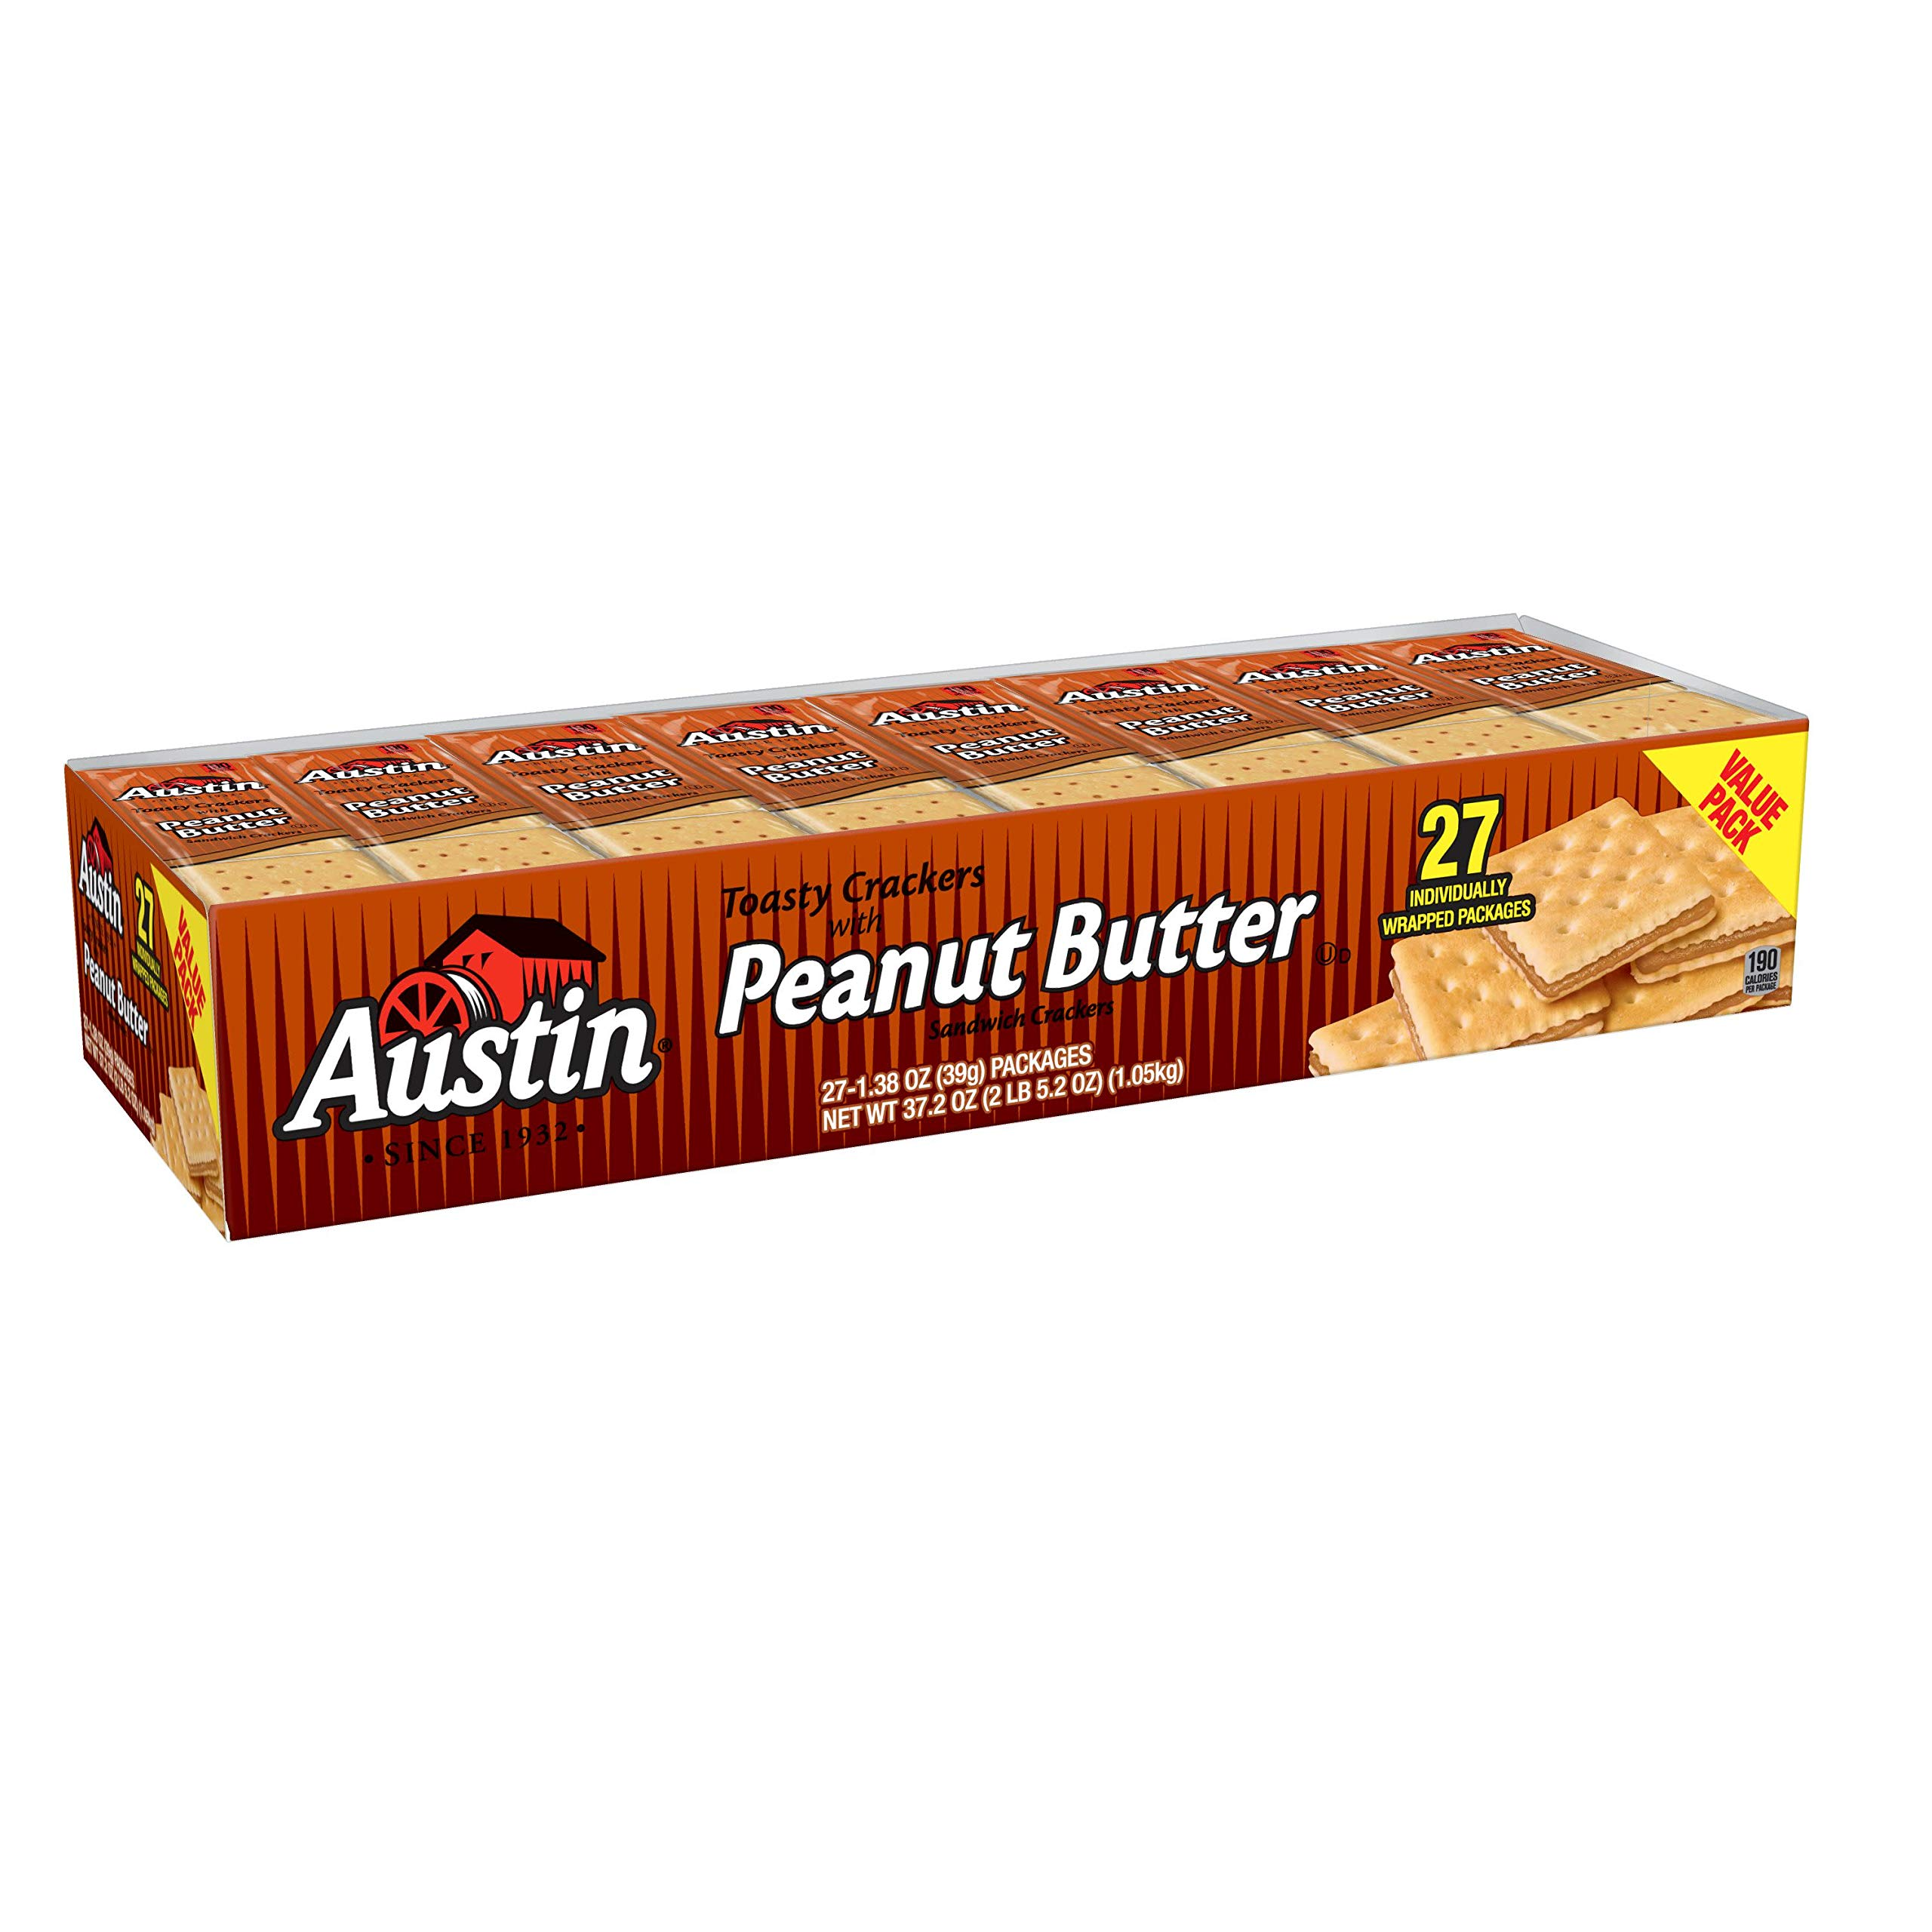 Austin Toasty Crackers with Peanut Butter Sandwich Crackers Value Pack, 1.38 Oz., 27 Count, 12 Pack by Austin